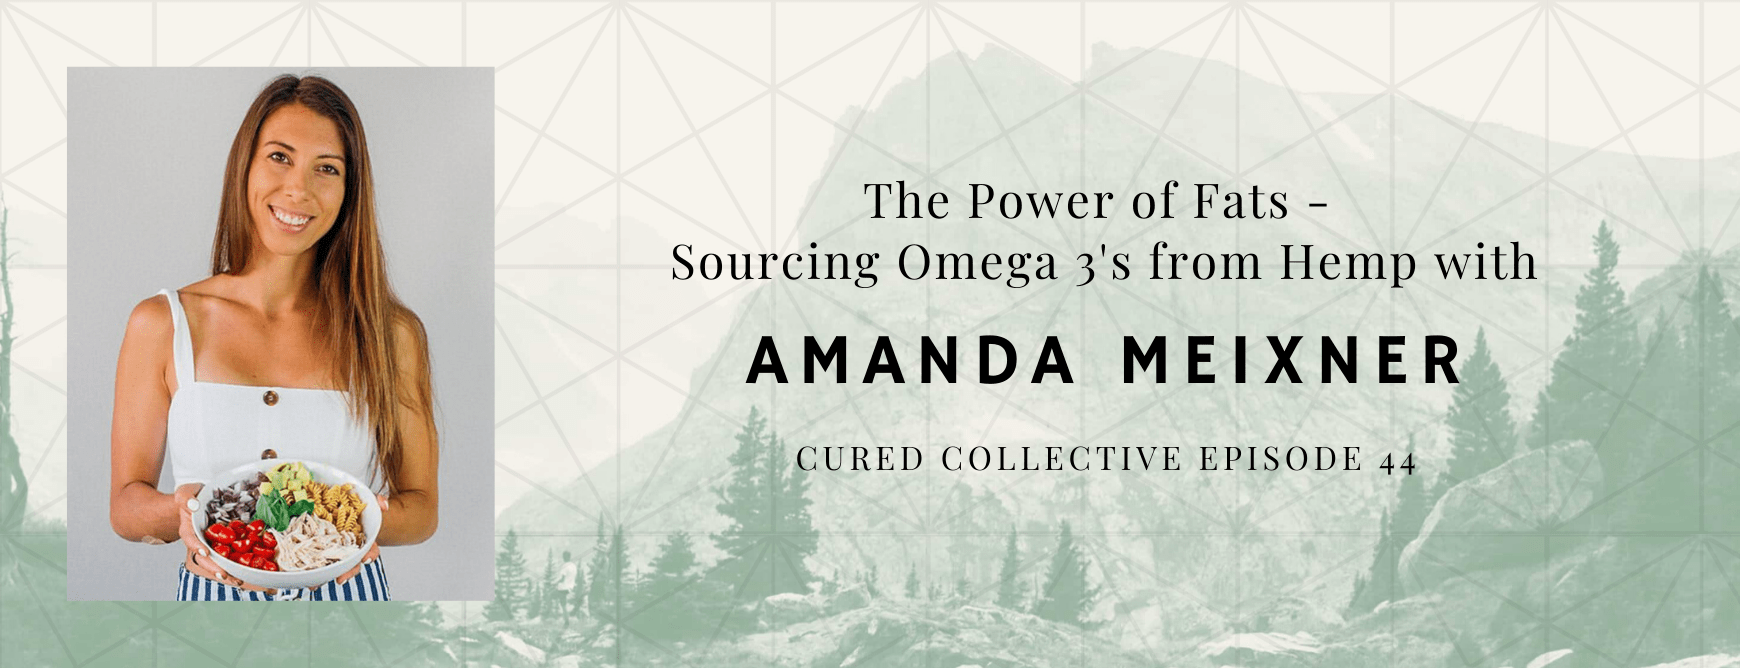 Cured Collective CBD Podcast with Amanda Meixner